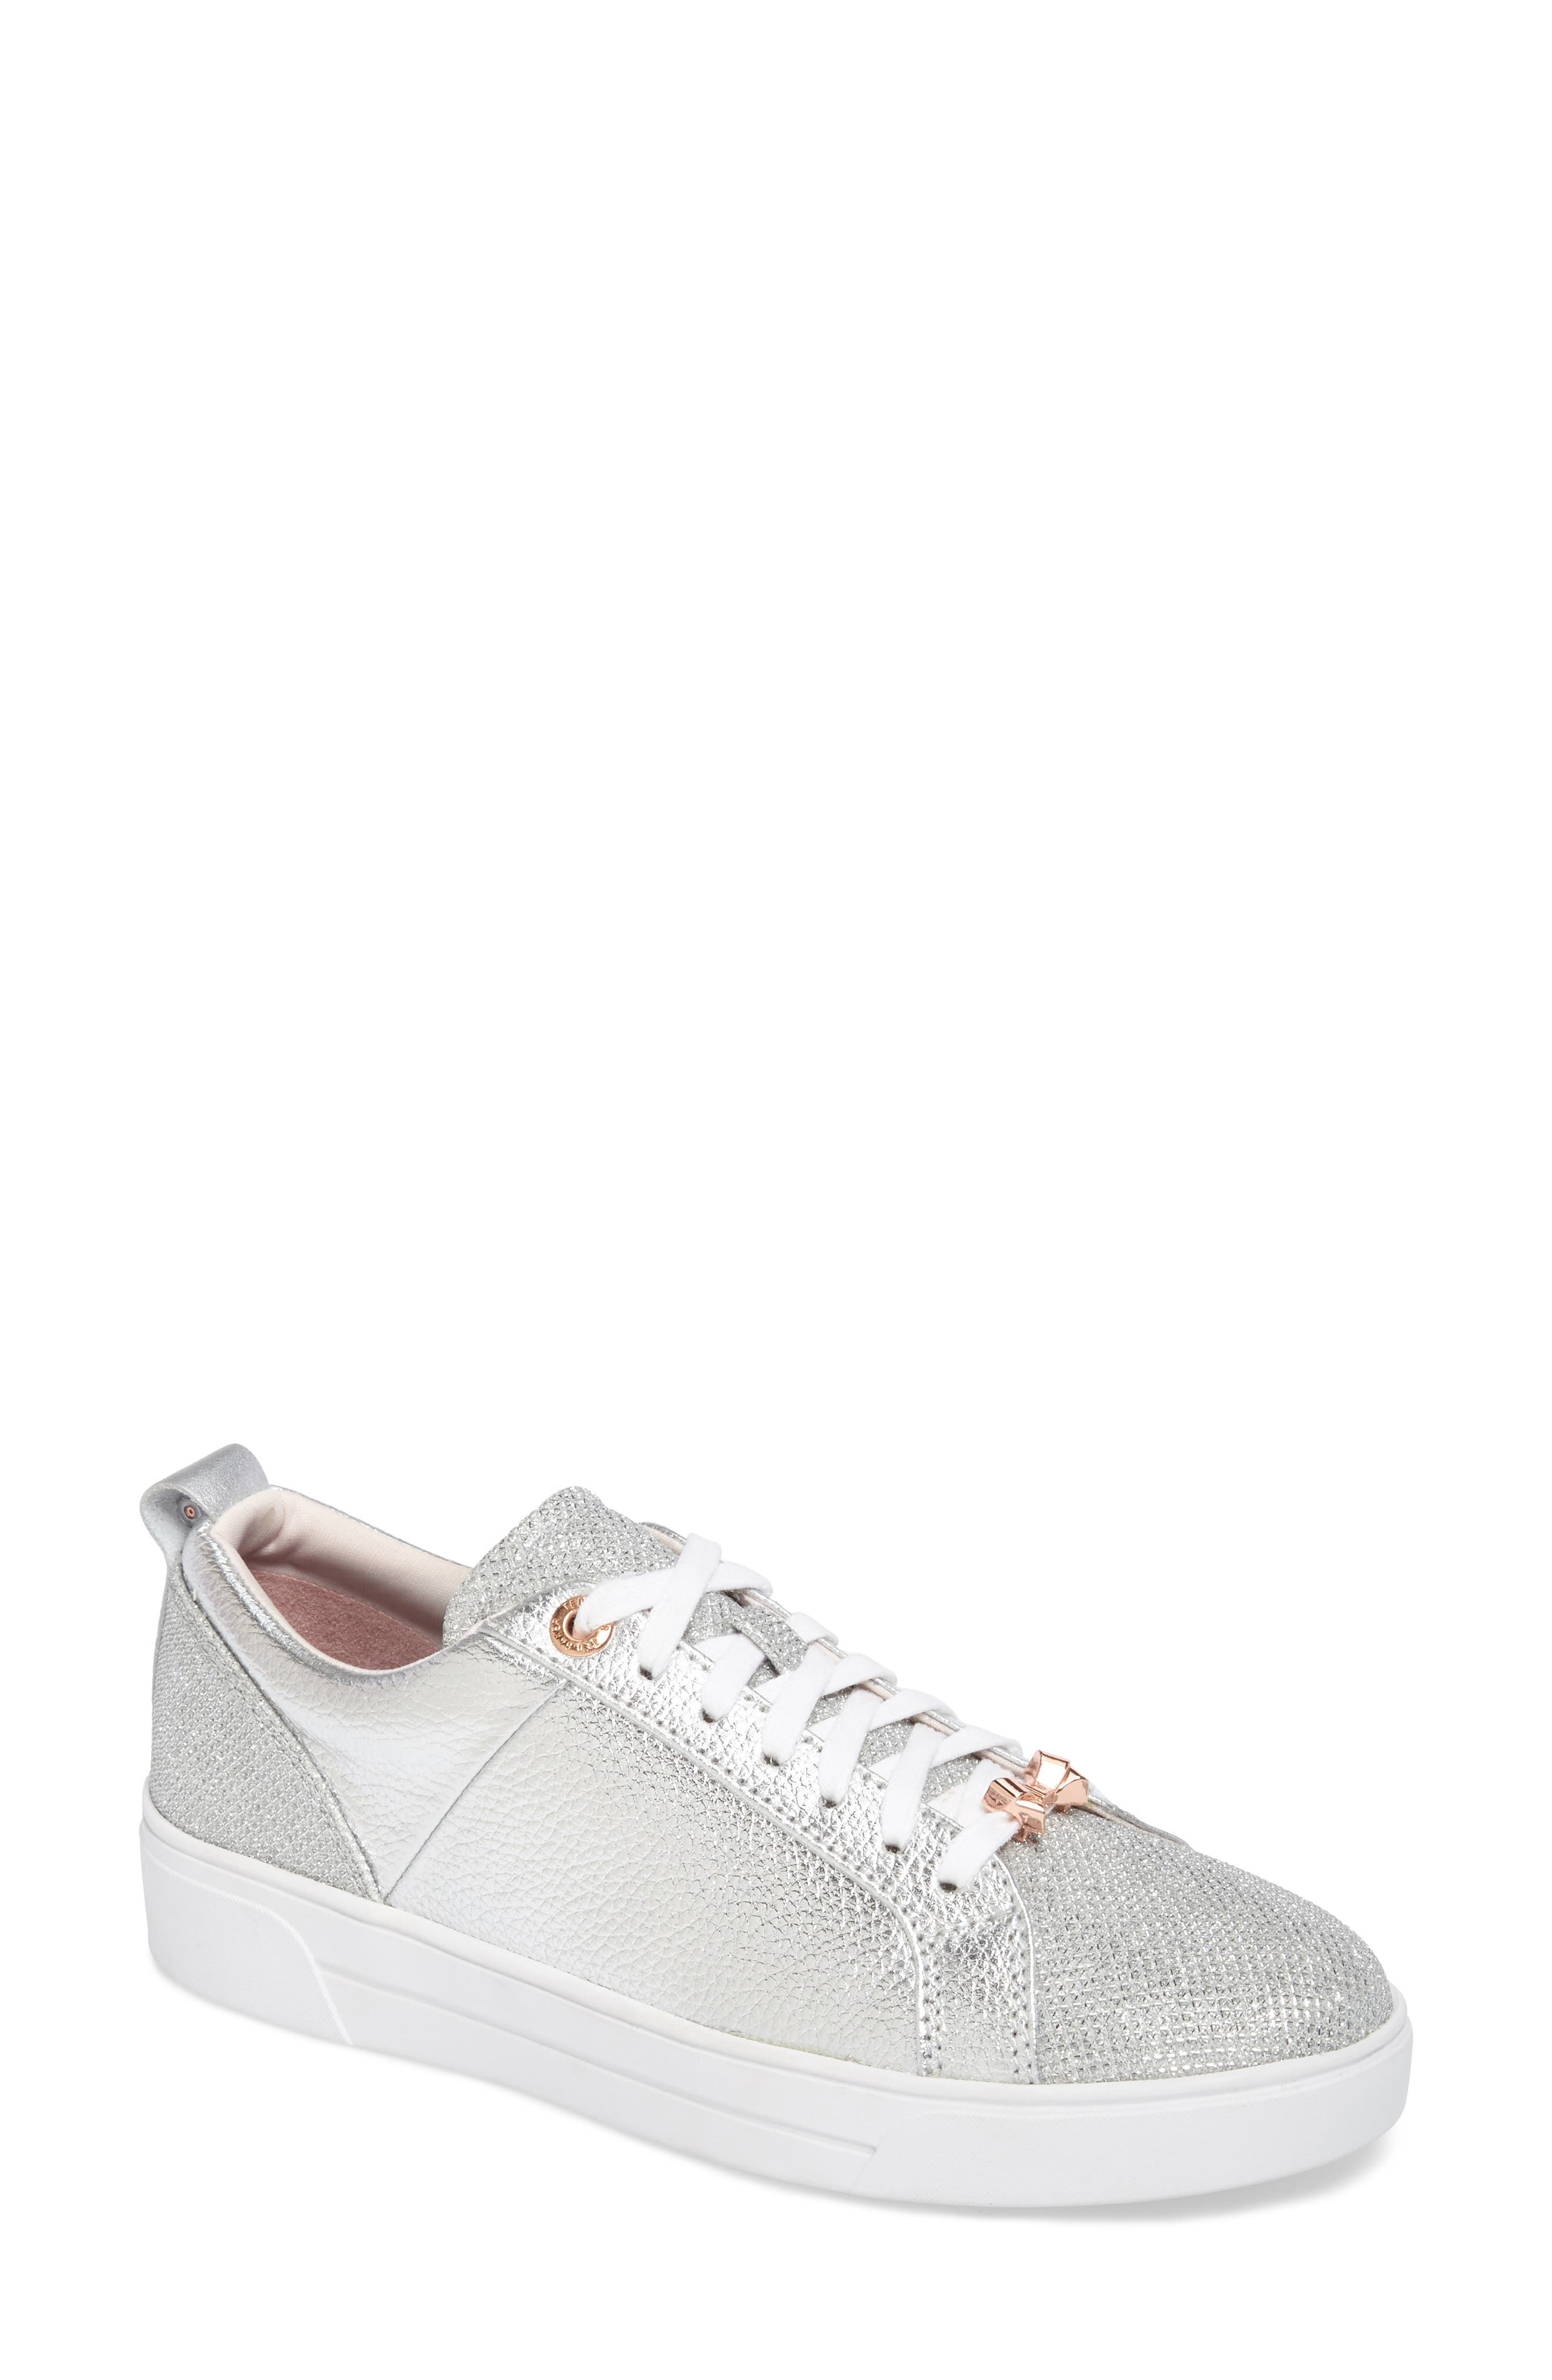 Kulei Sneaker,                         Main,                         color, Silver Leather